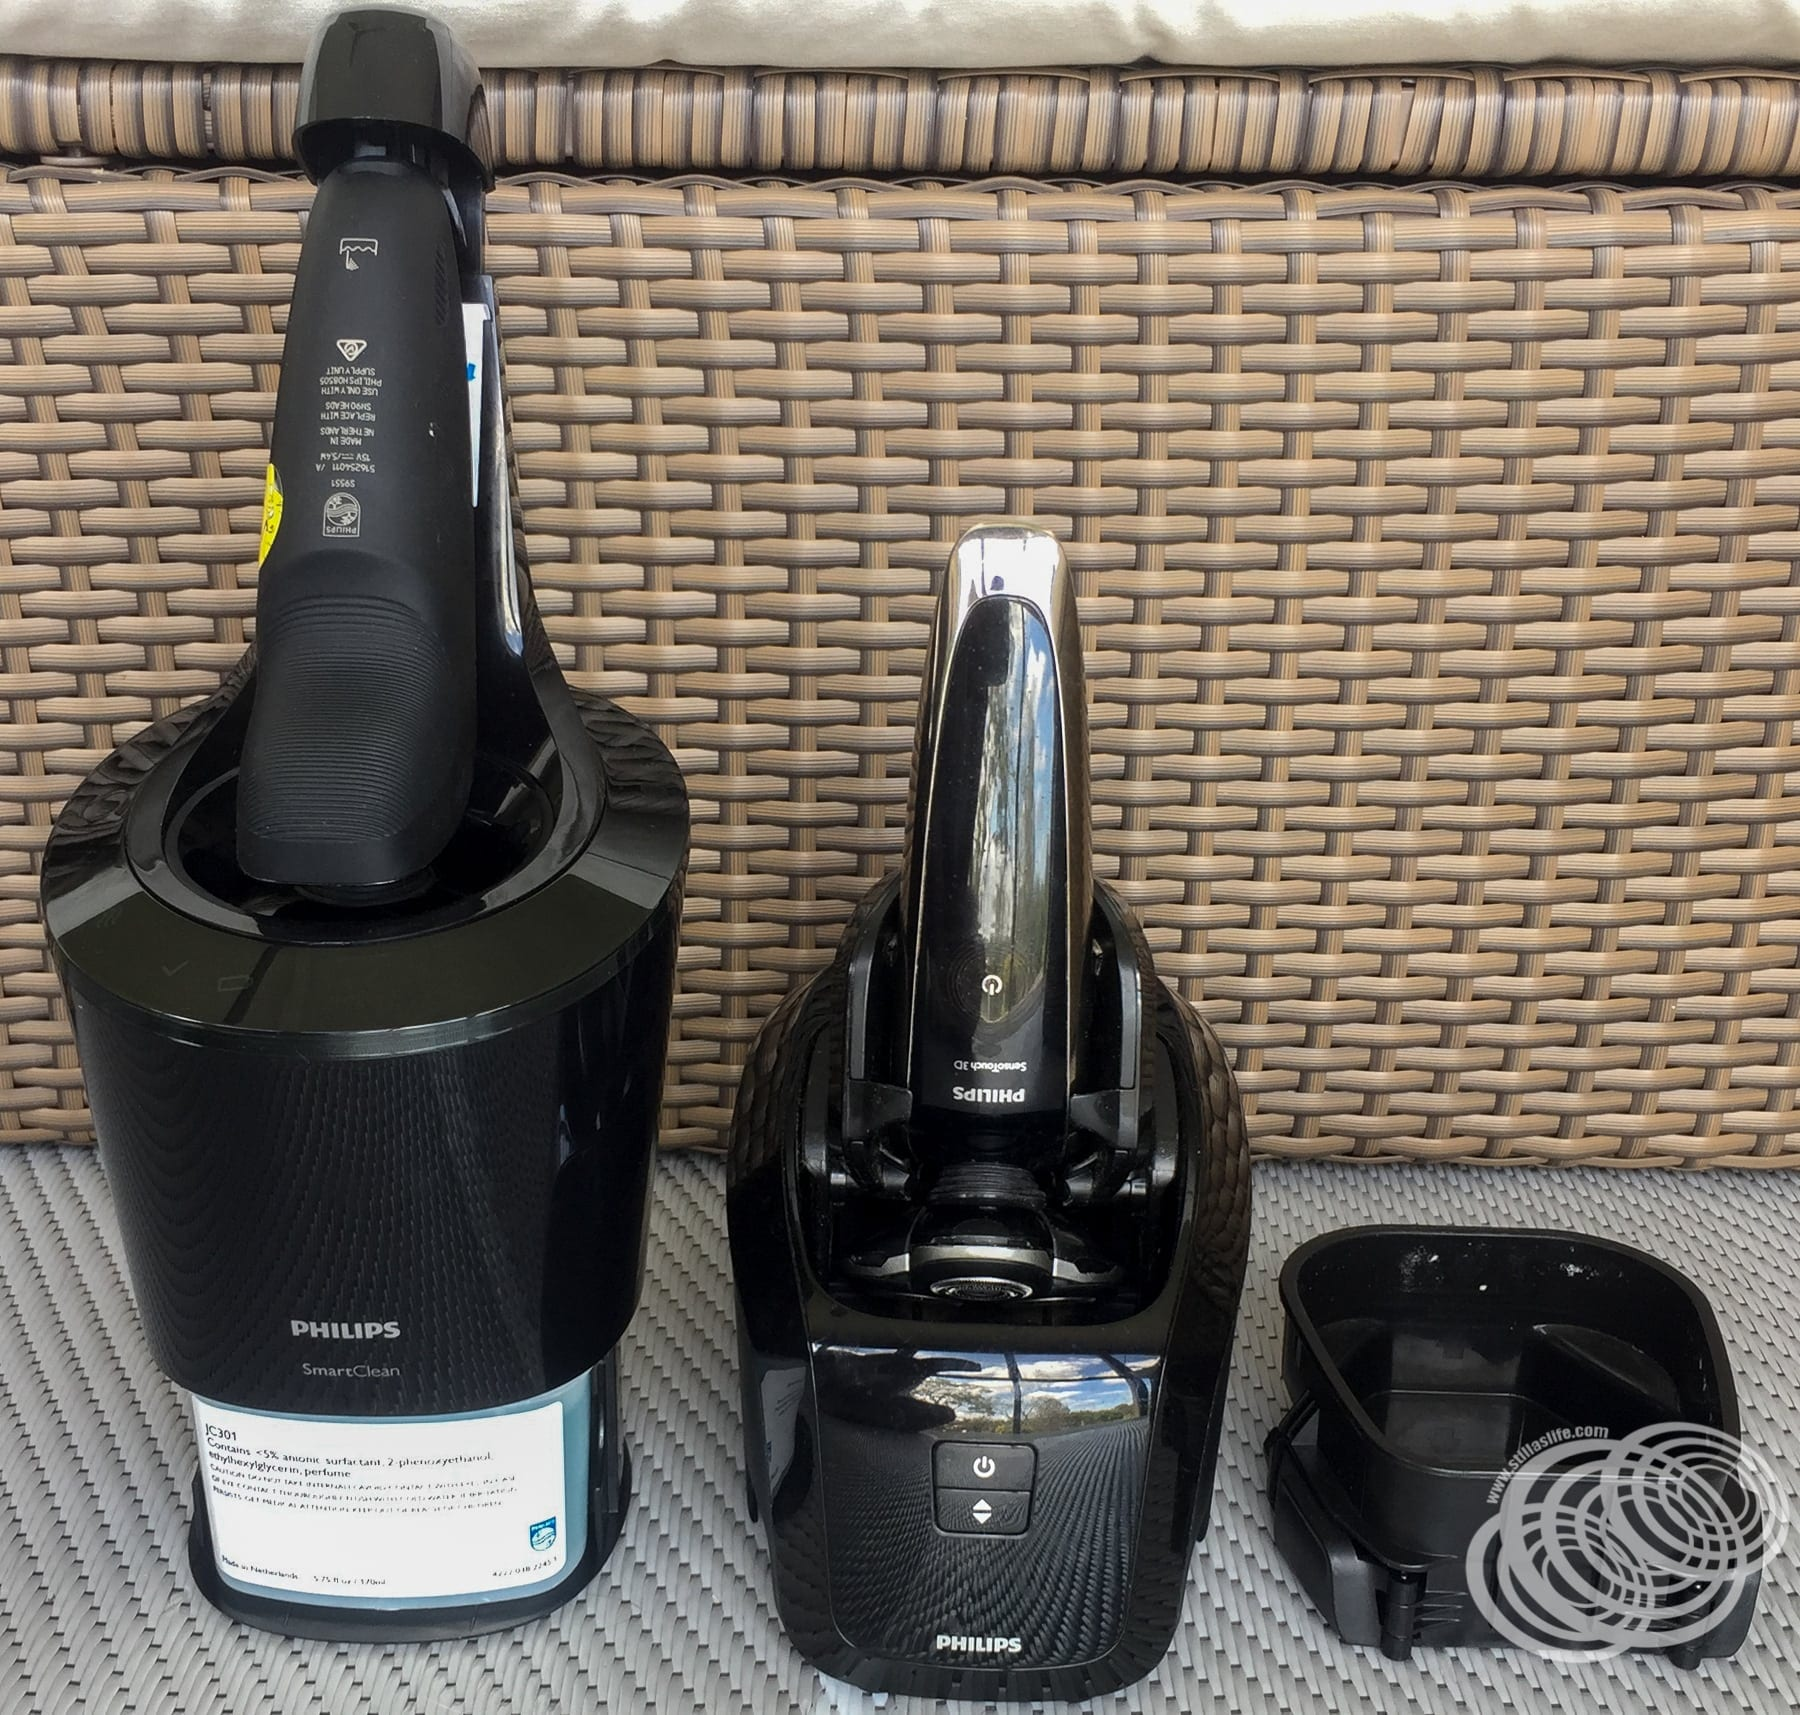 The SmartClean Plus cartridge and the old cleaner